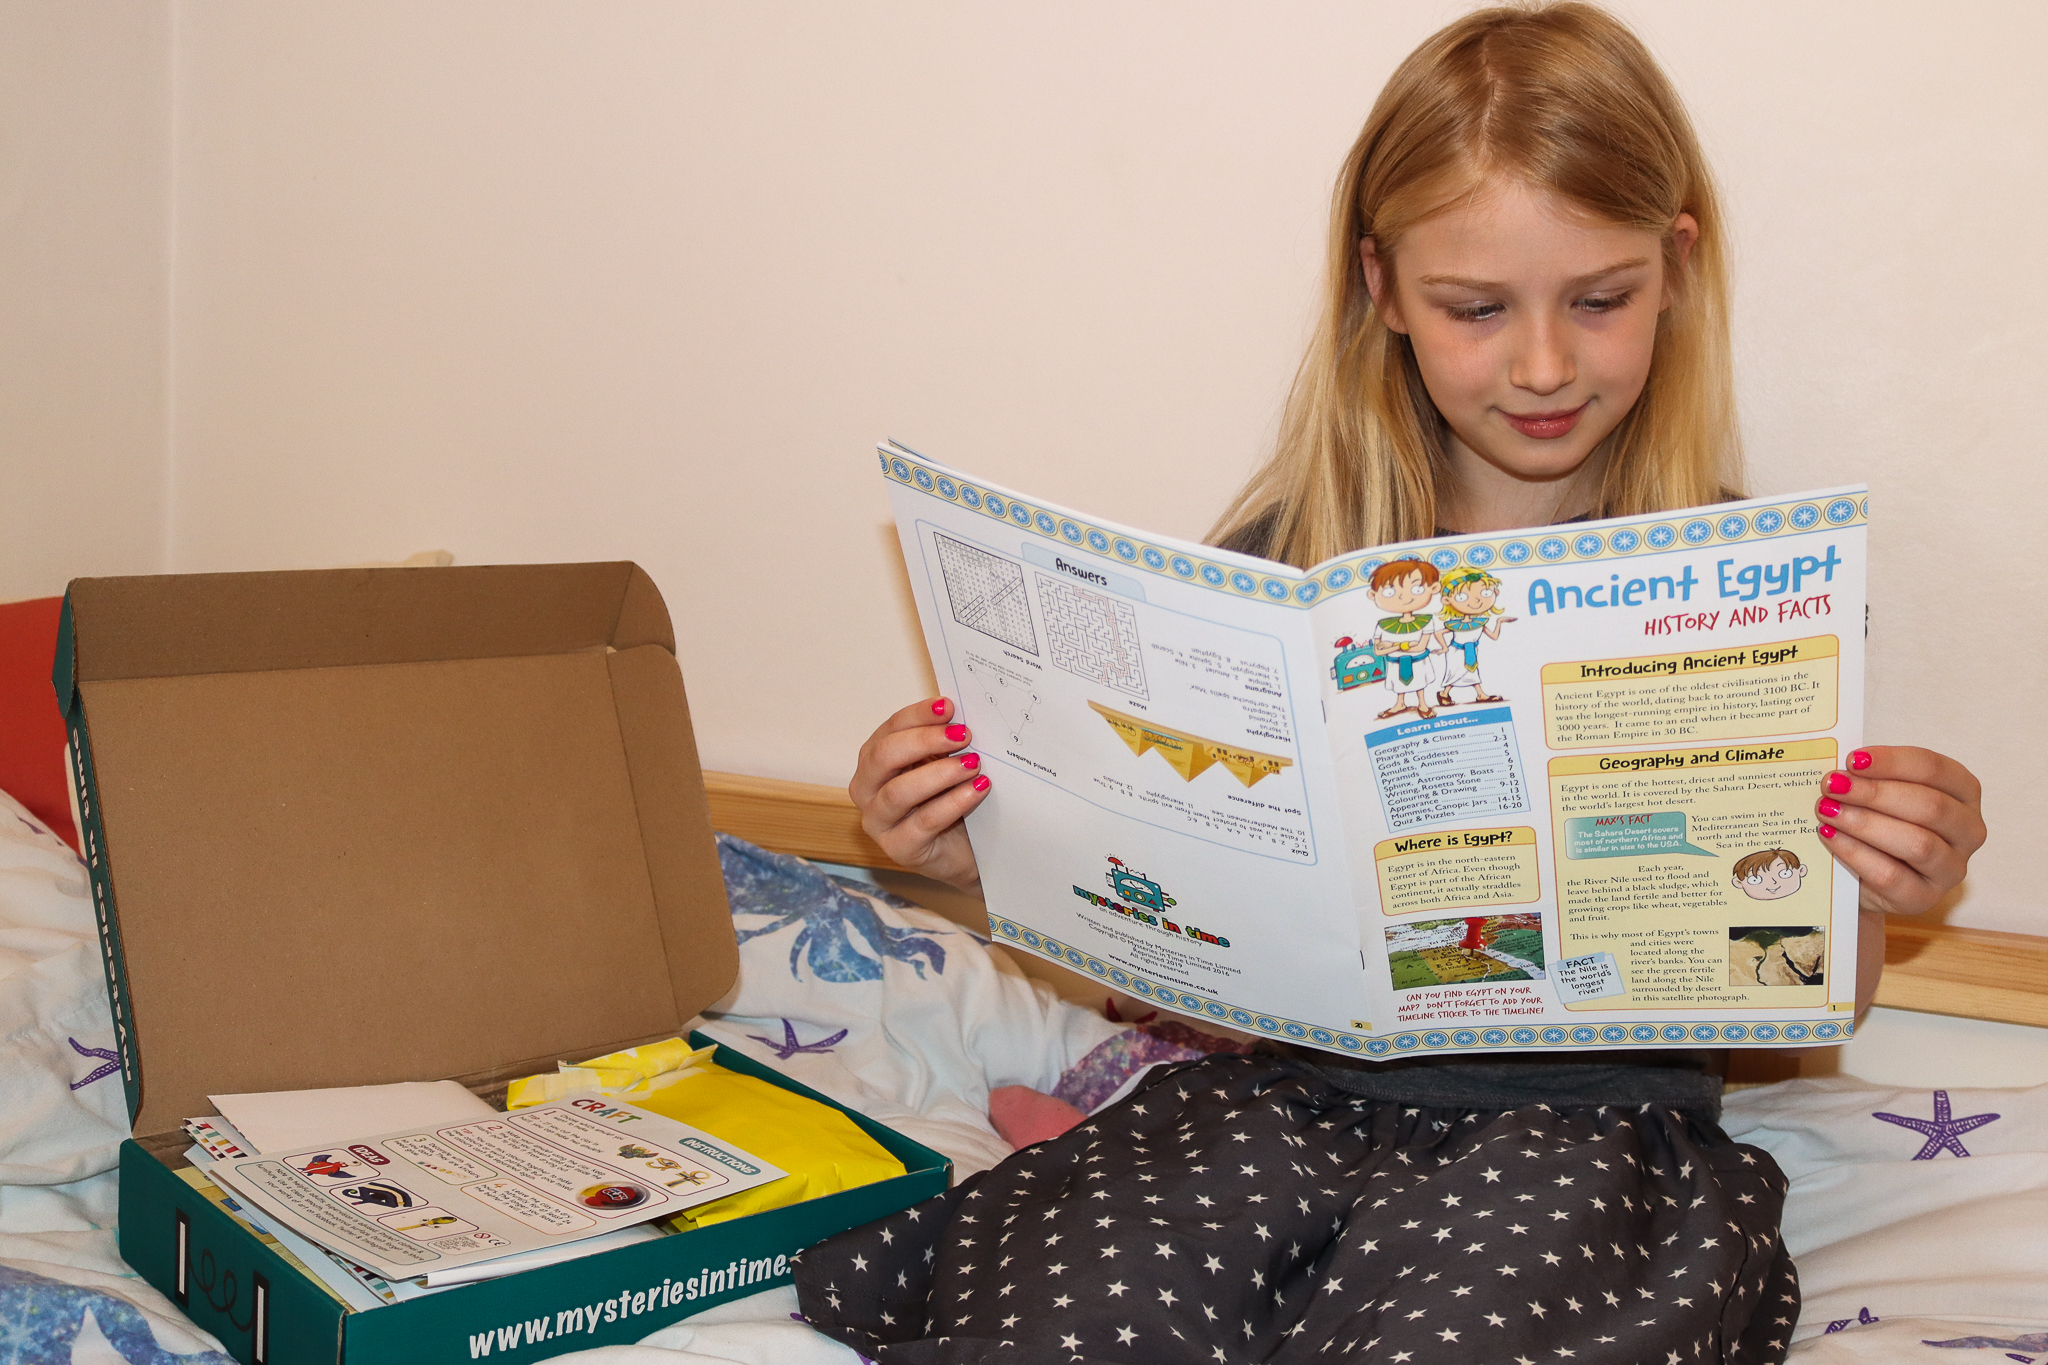 An 8 year old girl reading a magazine about ancient Egypt from the mysteries in time subscription box which is open next to her